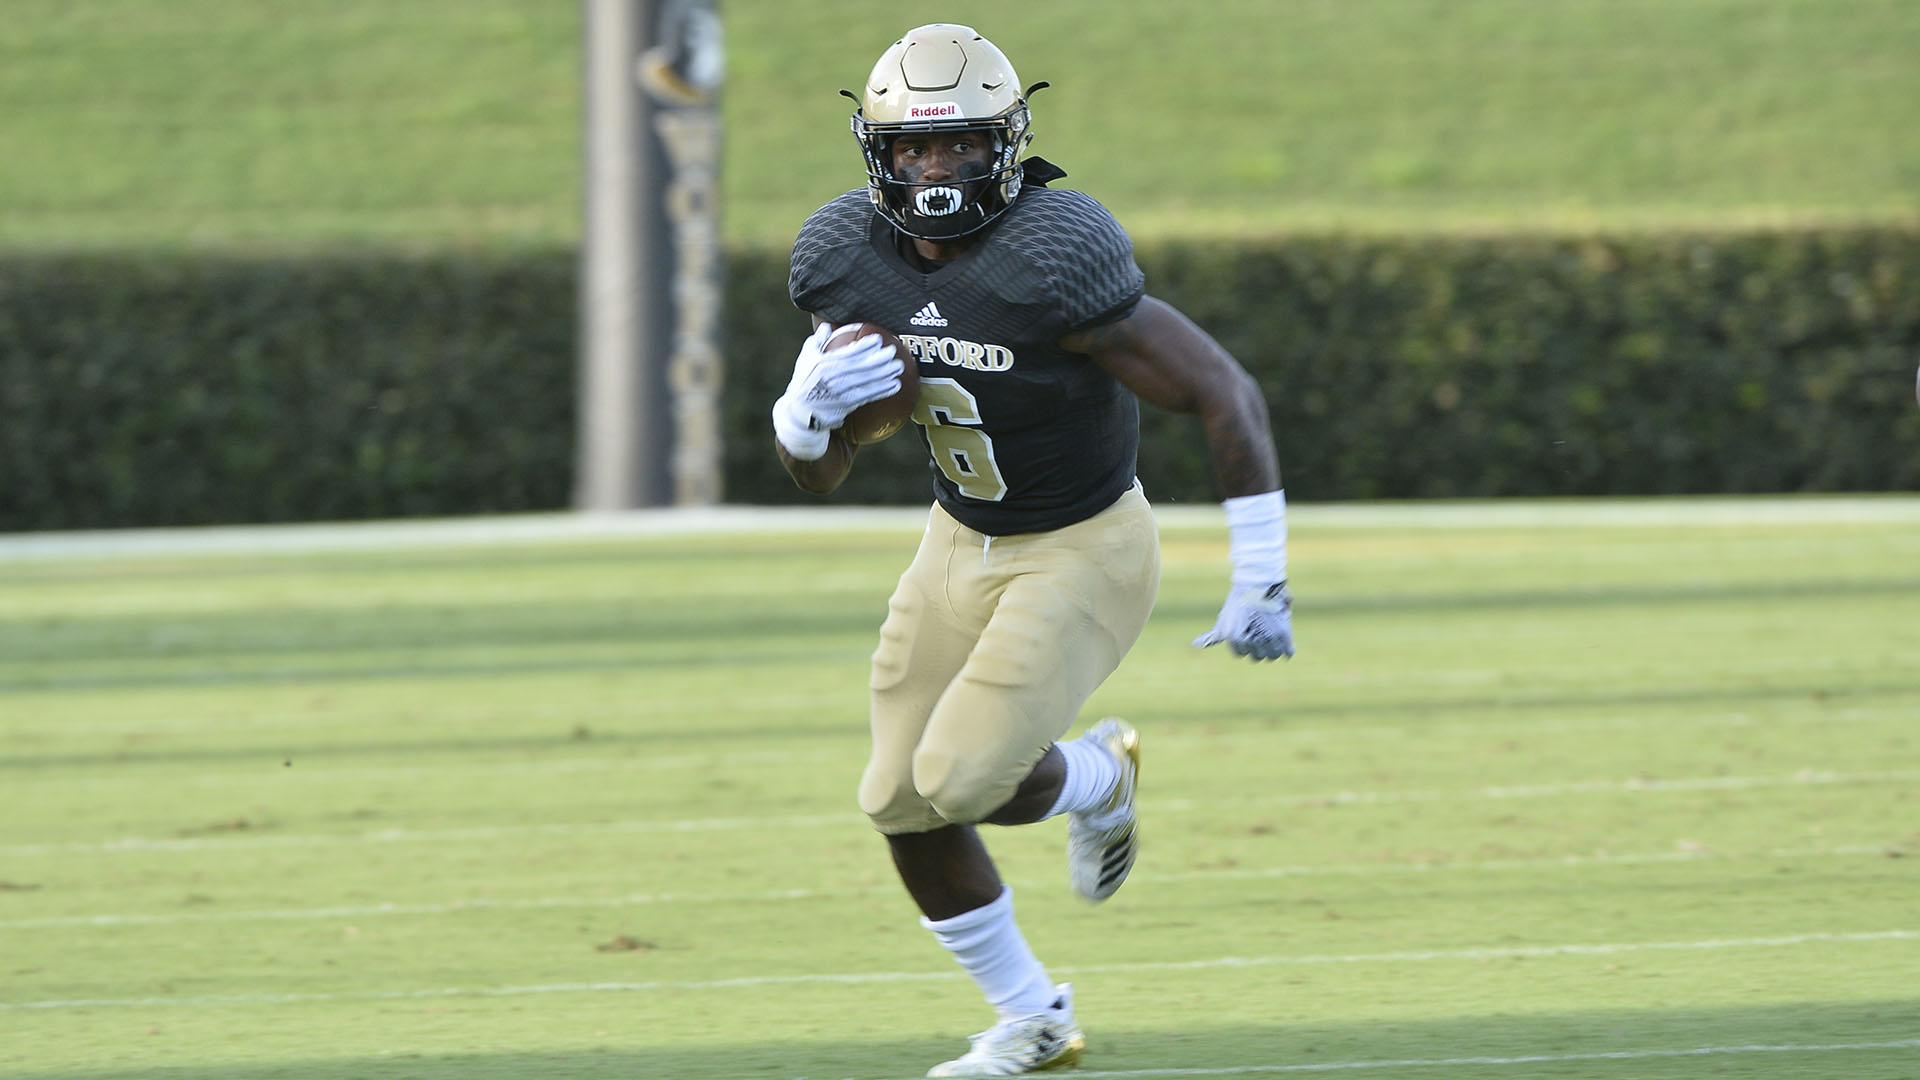 Rountree Moore Ford >> Lennox McAfee - Football - Wofford College Athletics